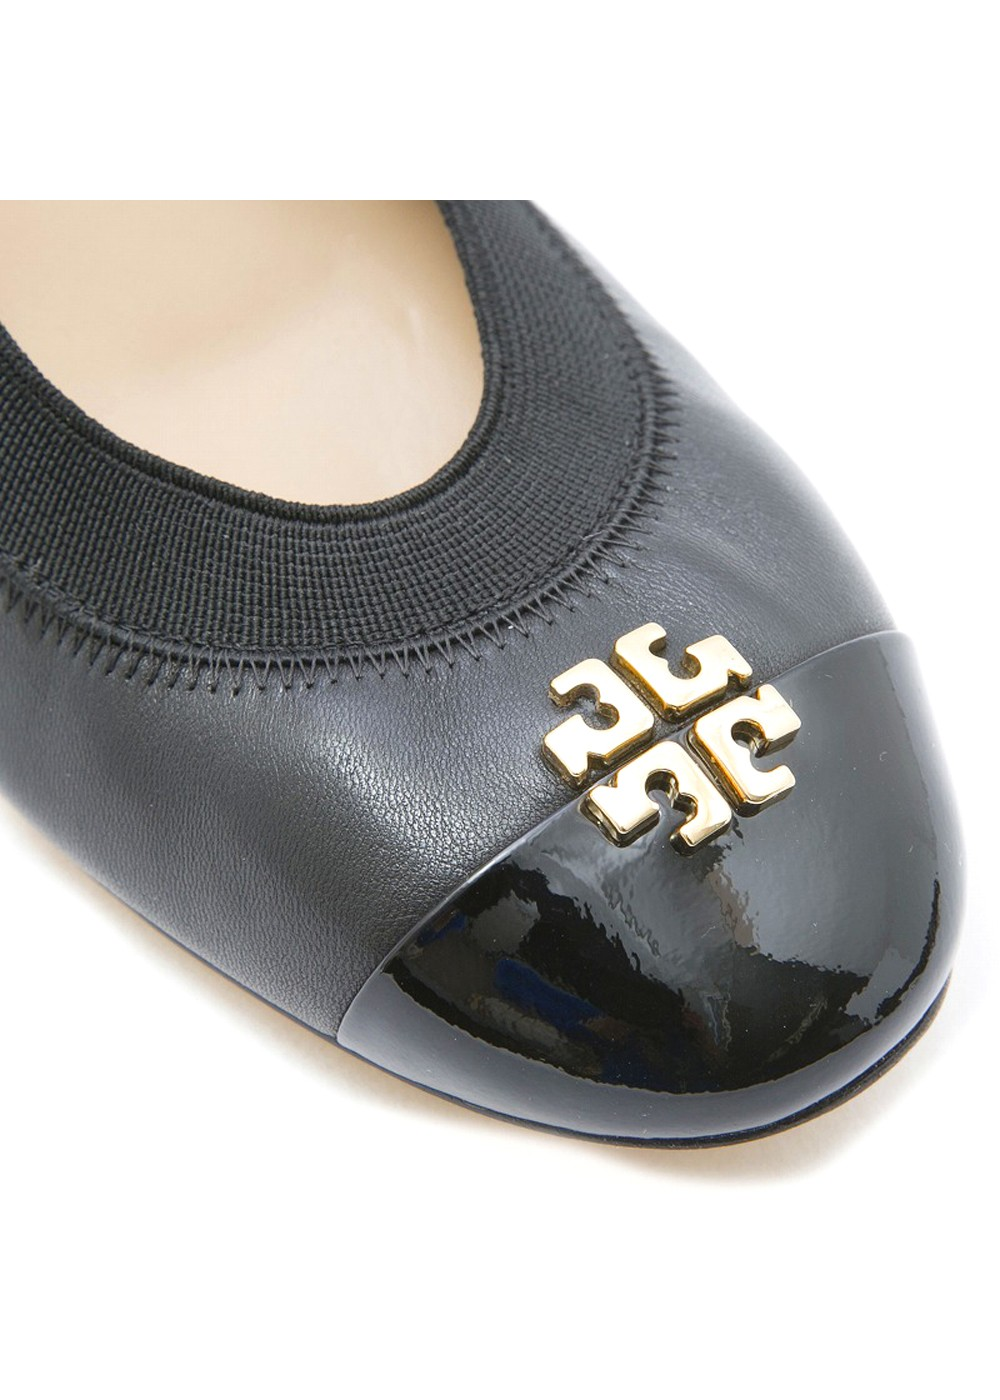 TORY BURCH|トリバーチ|SHOE|シューズ|JOLIE 50MM PUMP CLASSIC SHEEP